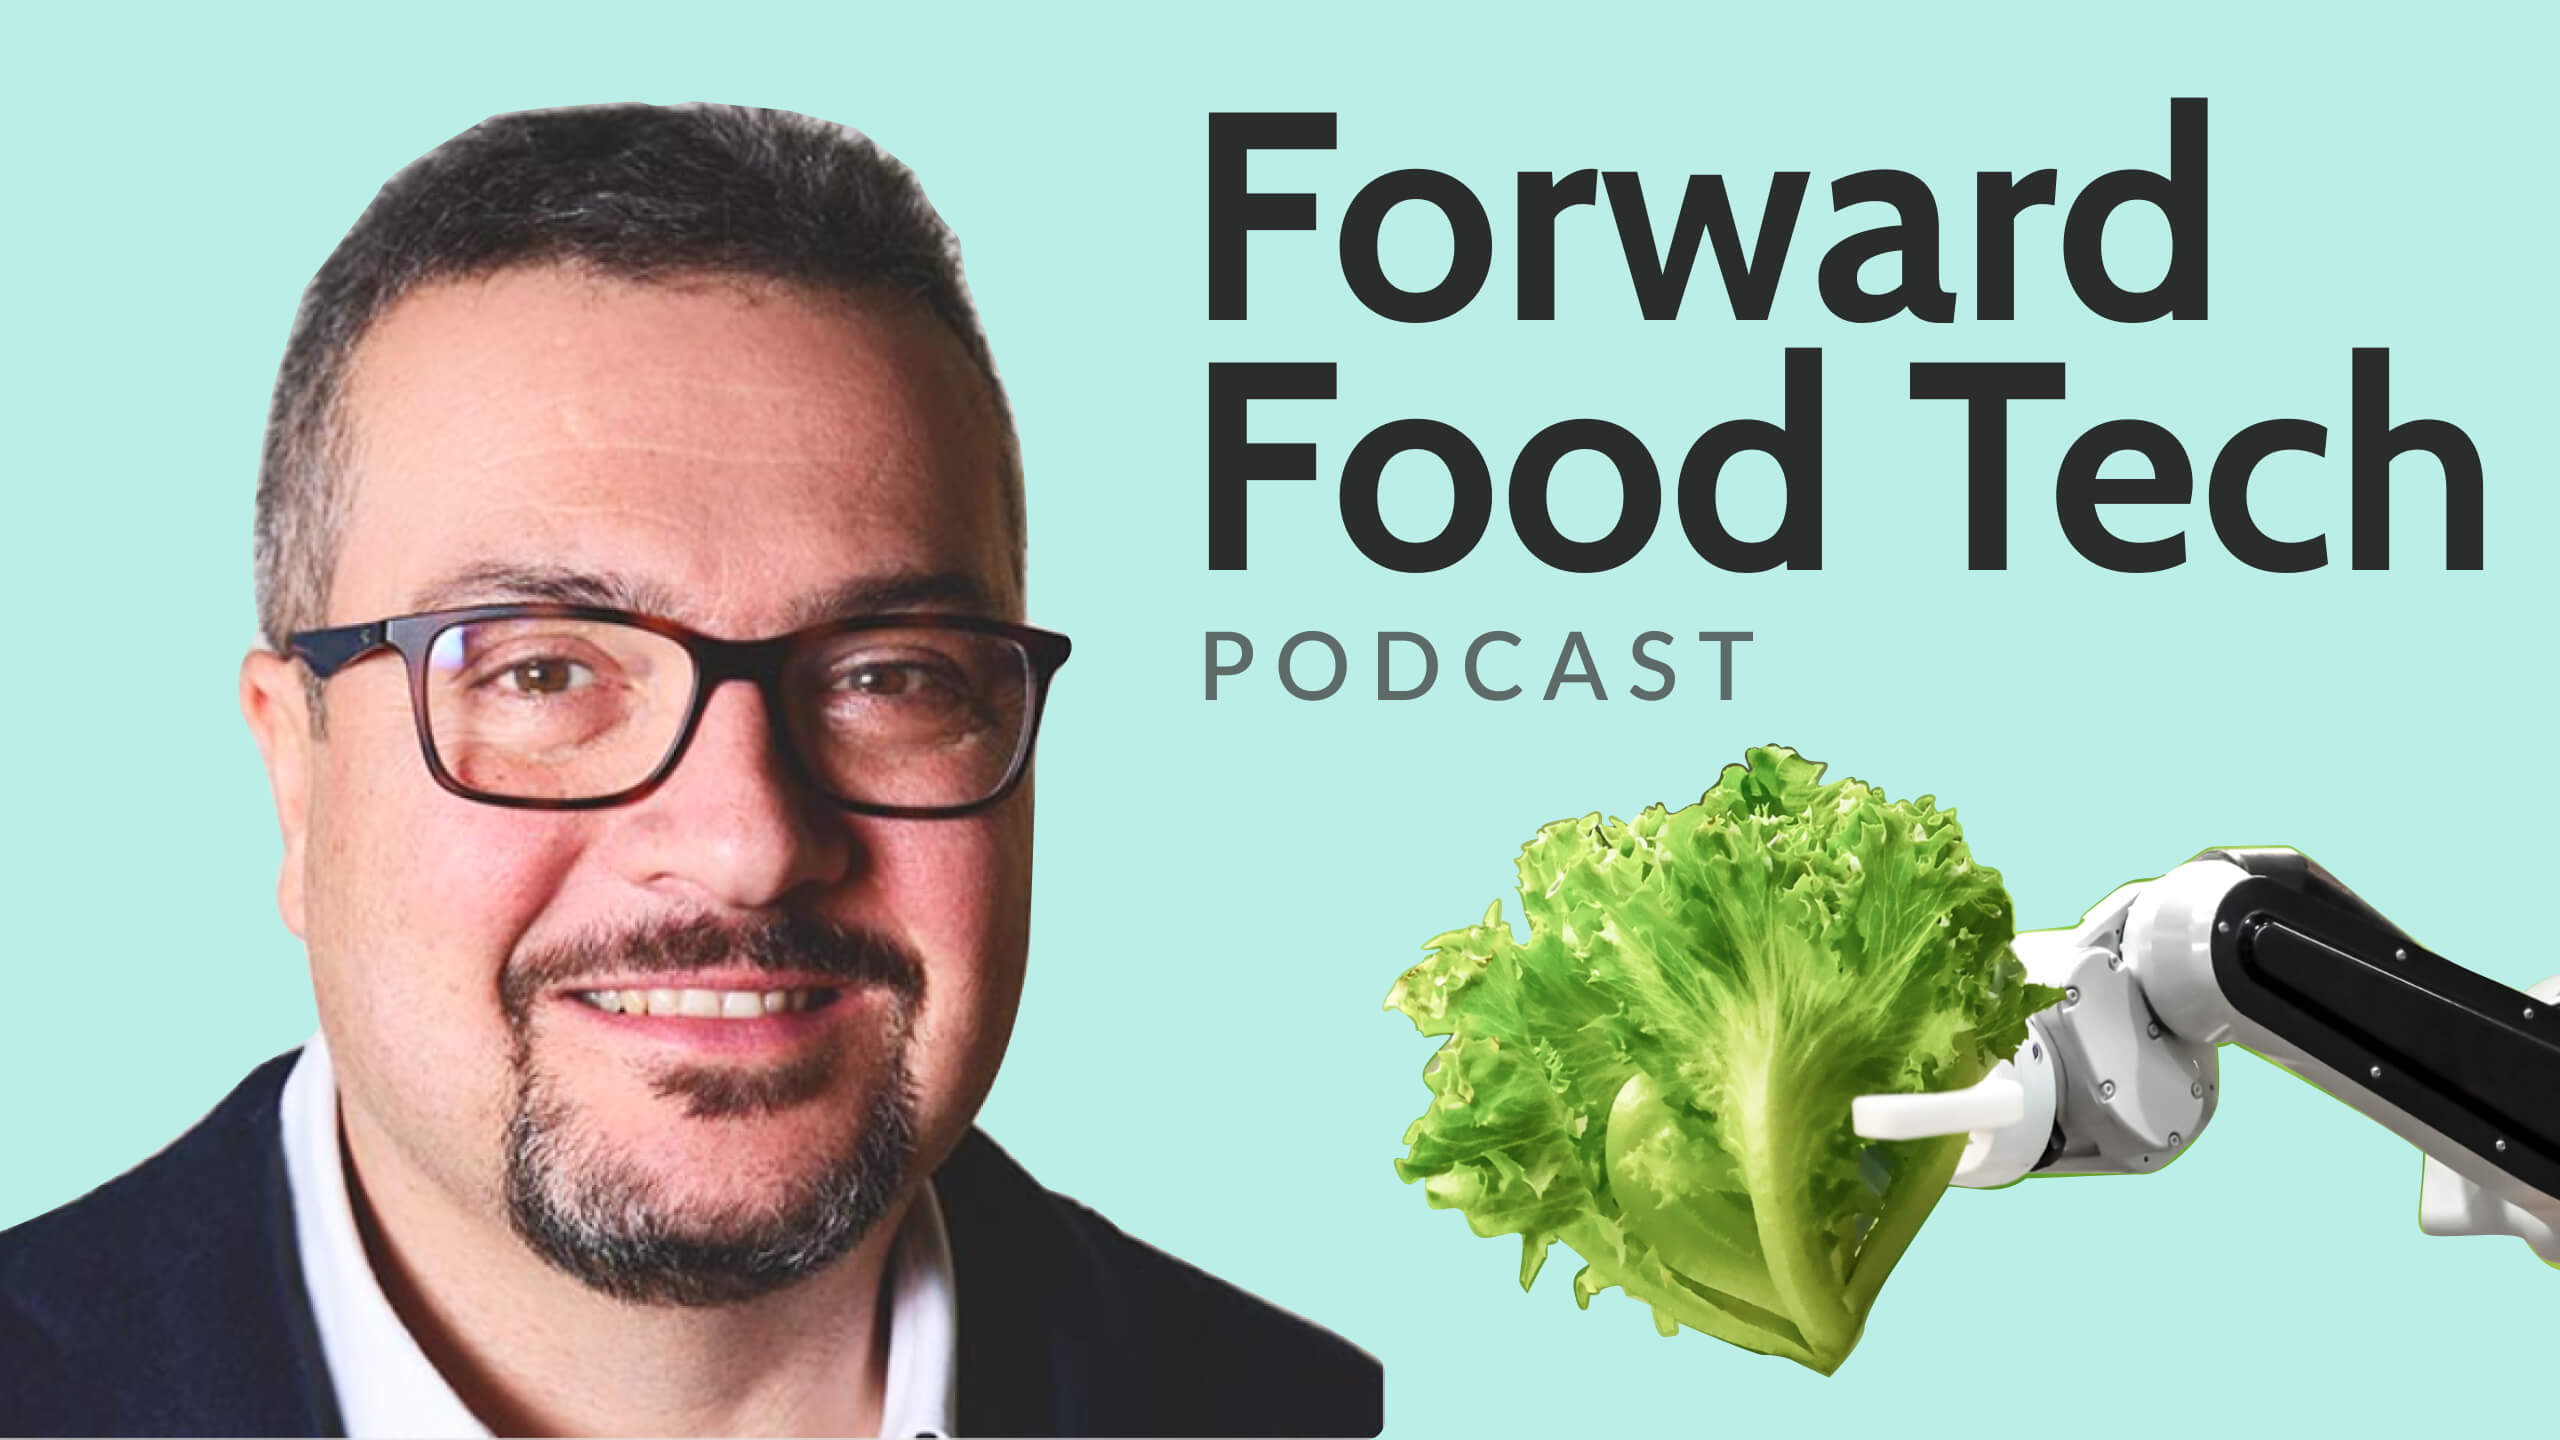 VC Raising for FoodTech Businesses | FowardFood.Tech